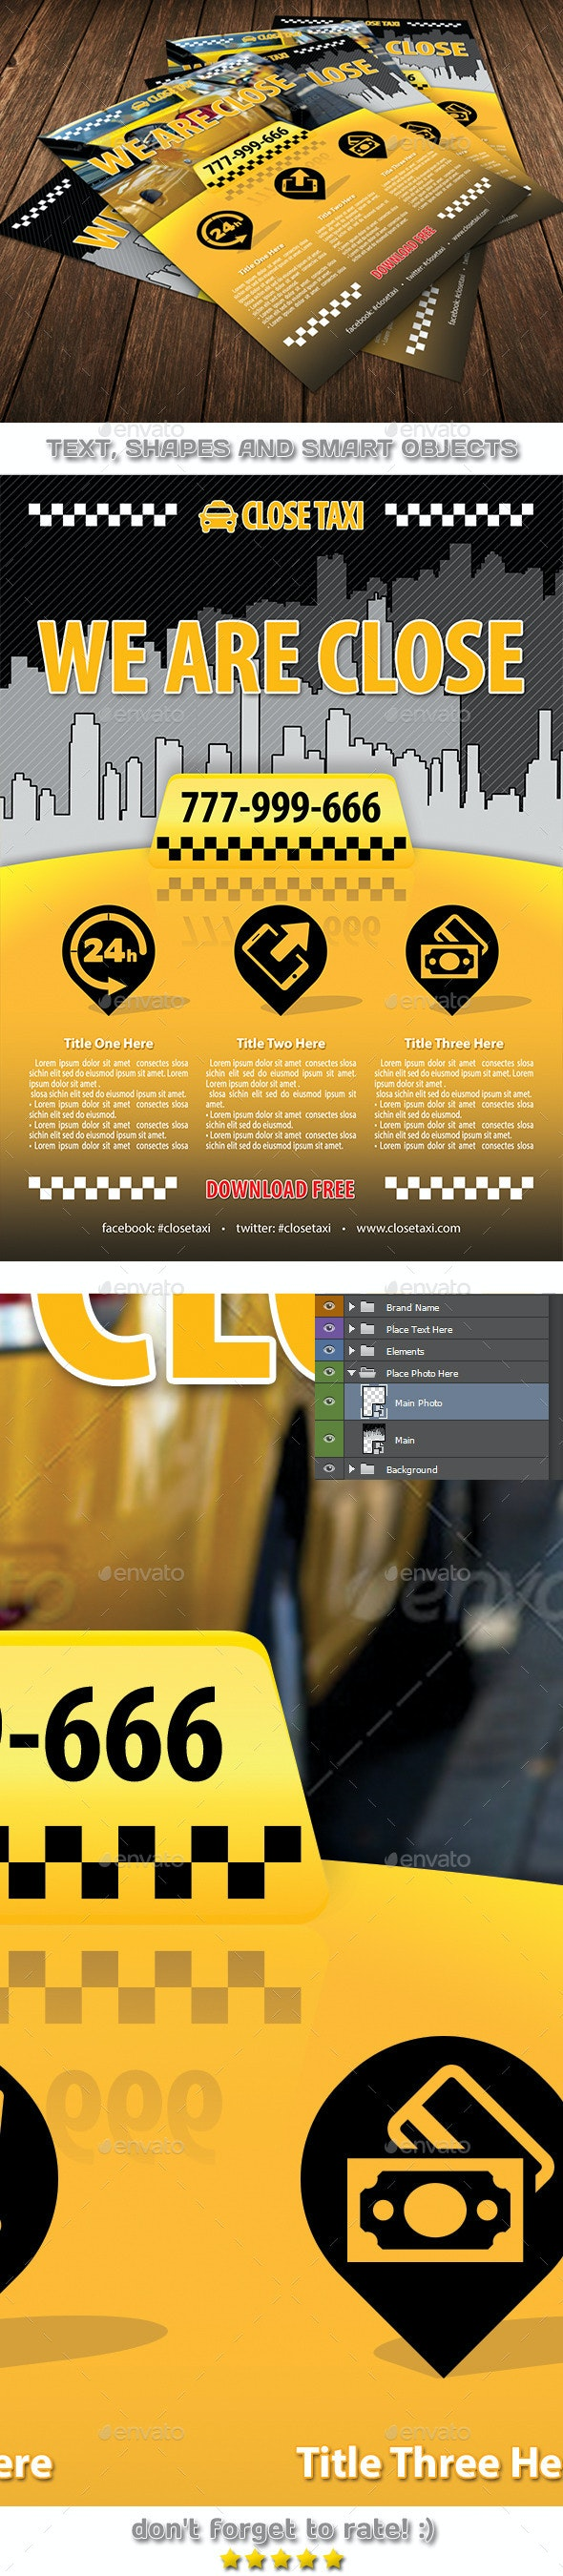 Taxi Cab Service Flyer Template 84 - Corporate Flyers